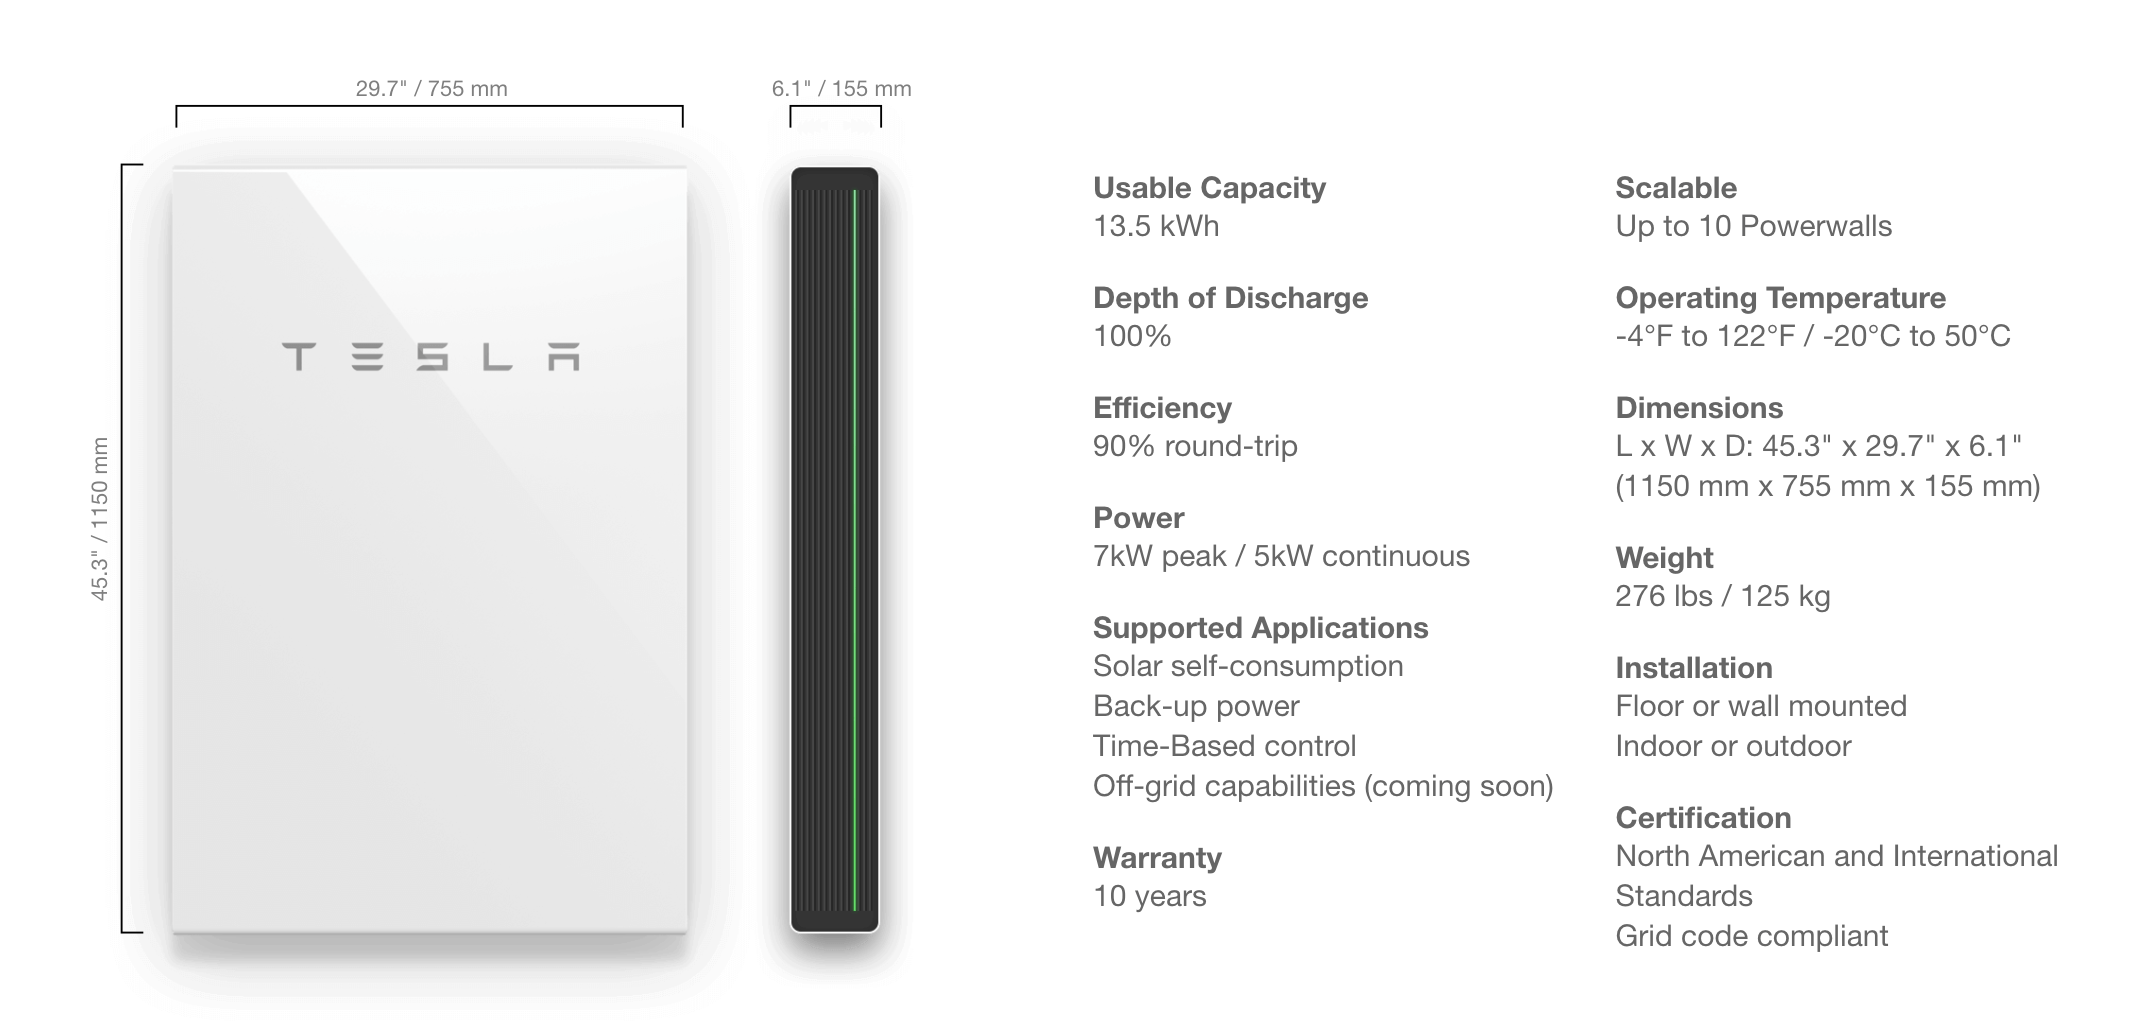 powerwall 2 wiring diagram 240v to 12v transformer everything you need know about the tesla 2019 image courtesy